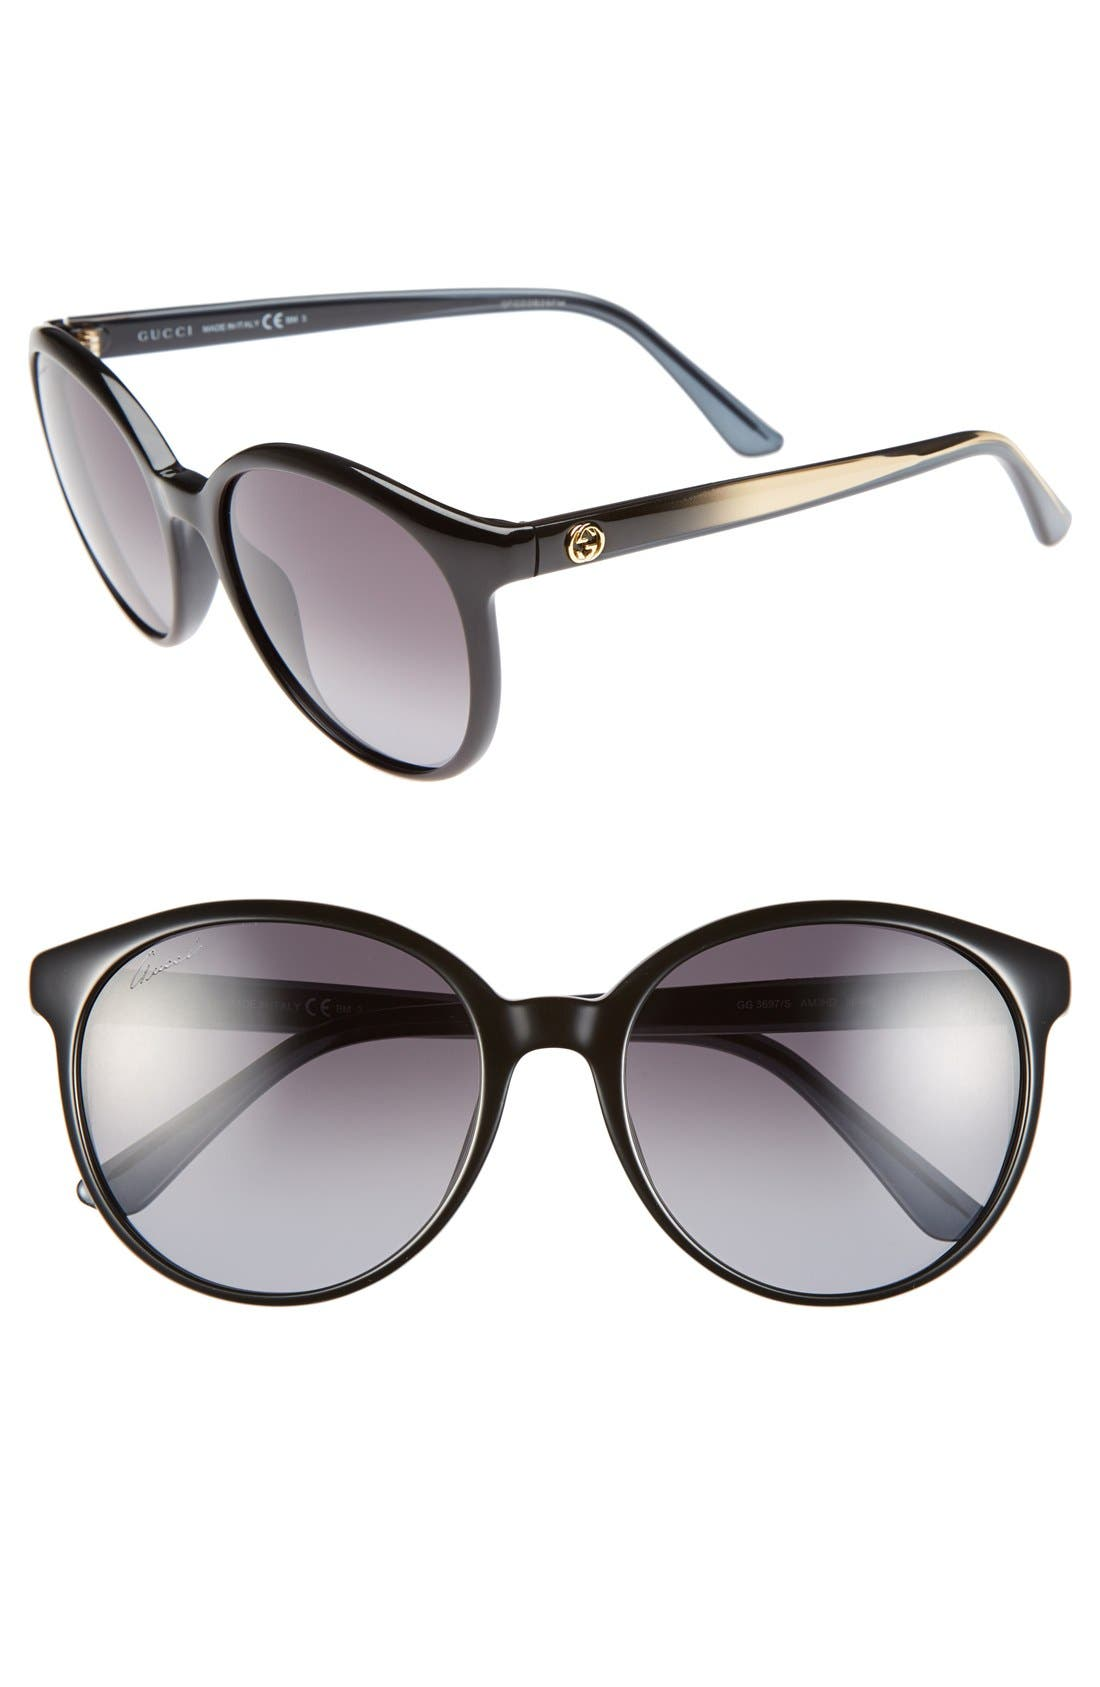 Alternate Image 1 Selected - Gucci 56mm Retro Sunglasses